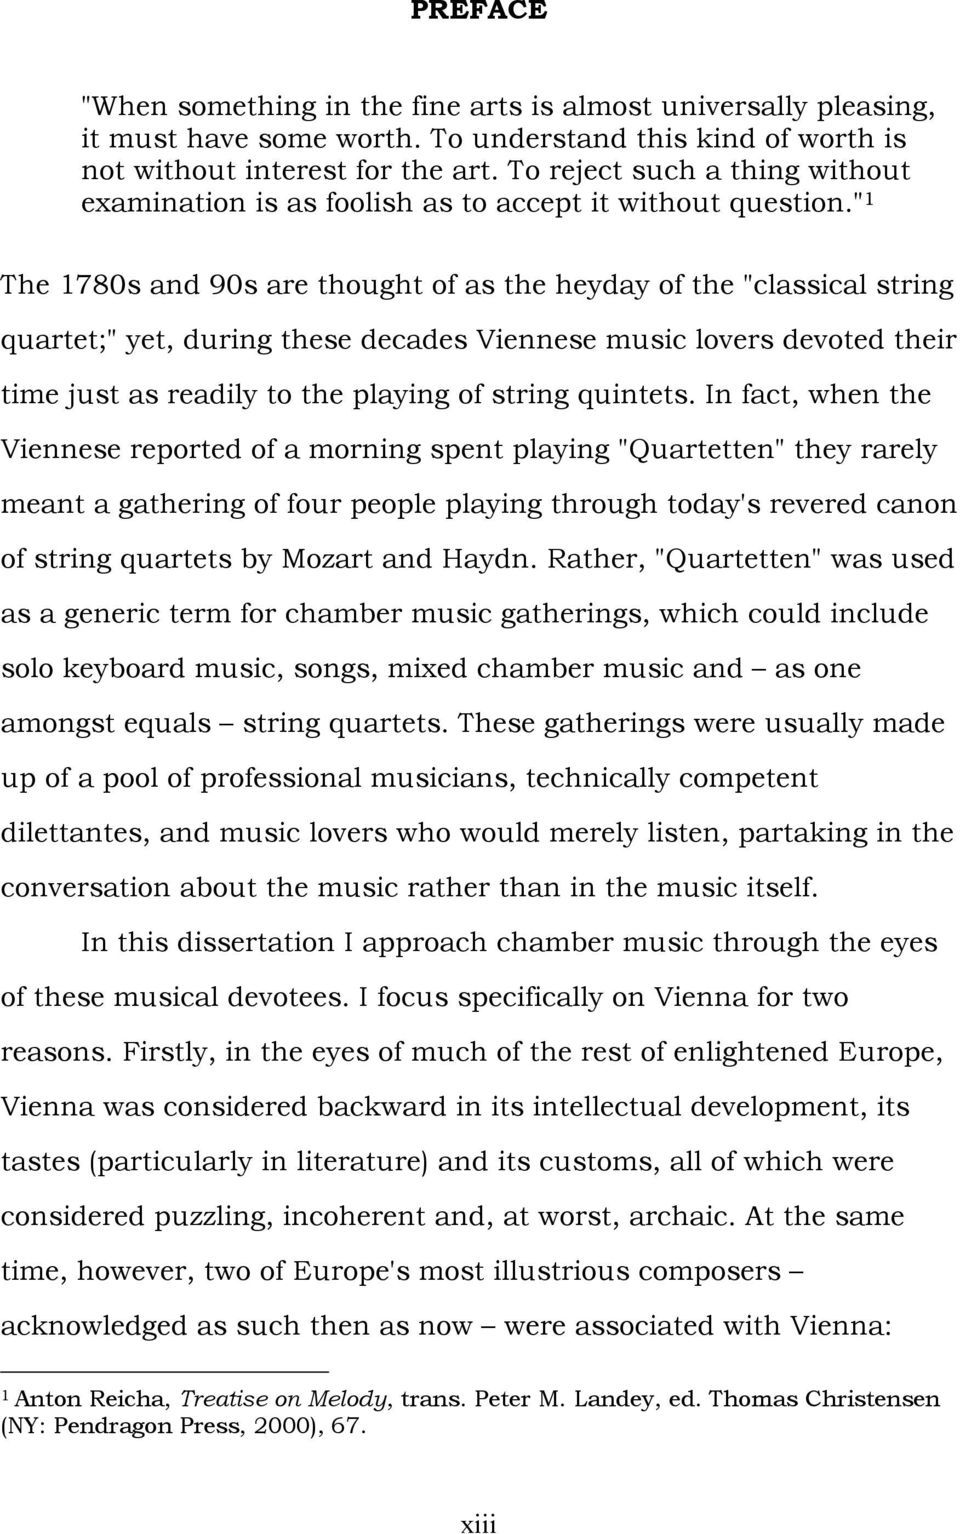 """ 1 The 1780s and 90s are thought of as the heyday of the ""classical string quartet;"" yet, during these decades Viennese music lovers devoted their time just as readily to the playing of string"